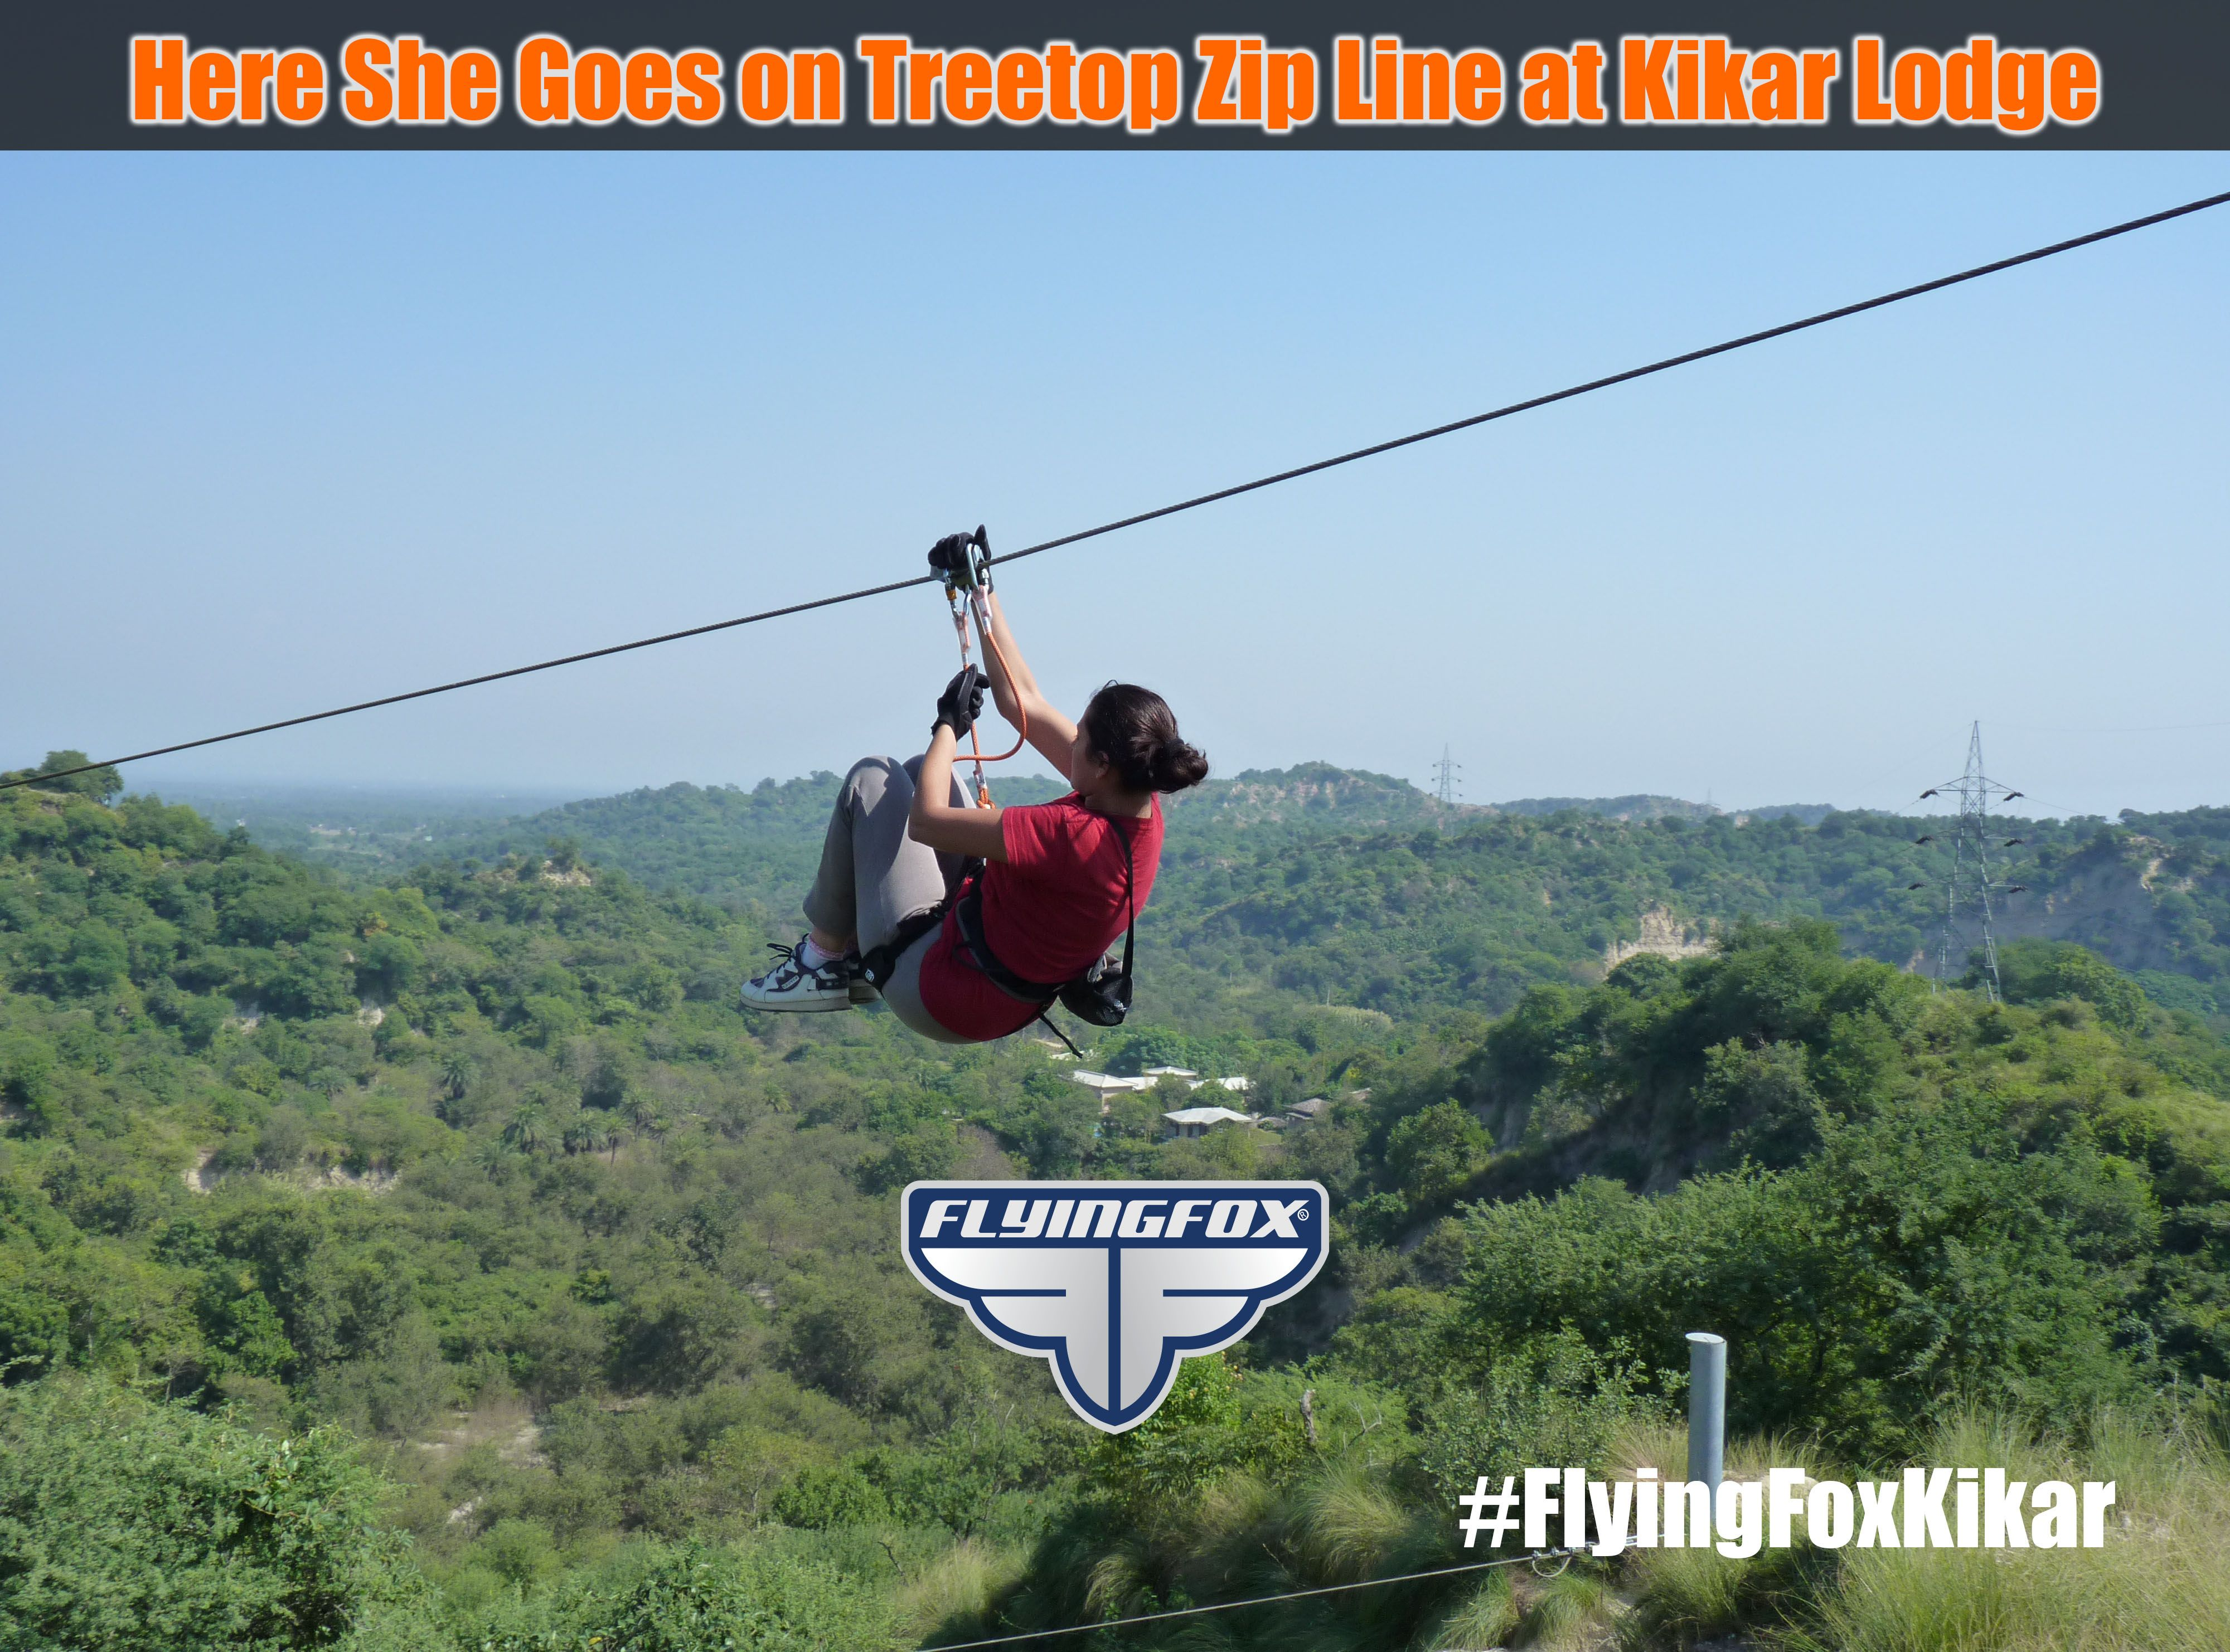 Here She Goes On Treetop Zip Line Tour By Flying Fox At Kikar Lodge For Bookings Http Flyingfox Asia Flyingfoxzip Flyingfoxkika Ziplining Tours Tree Tops